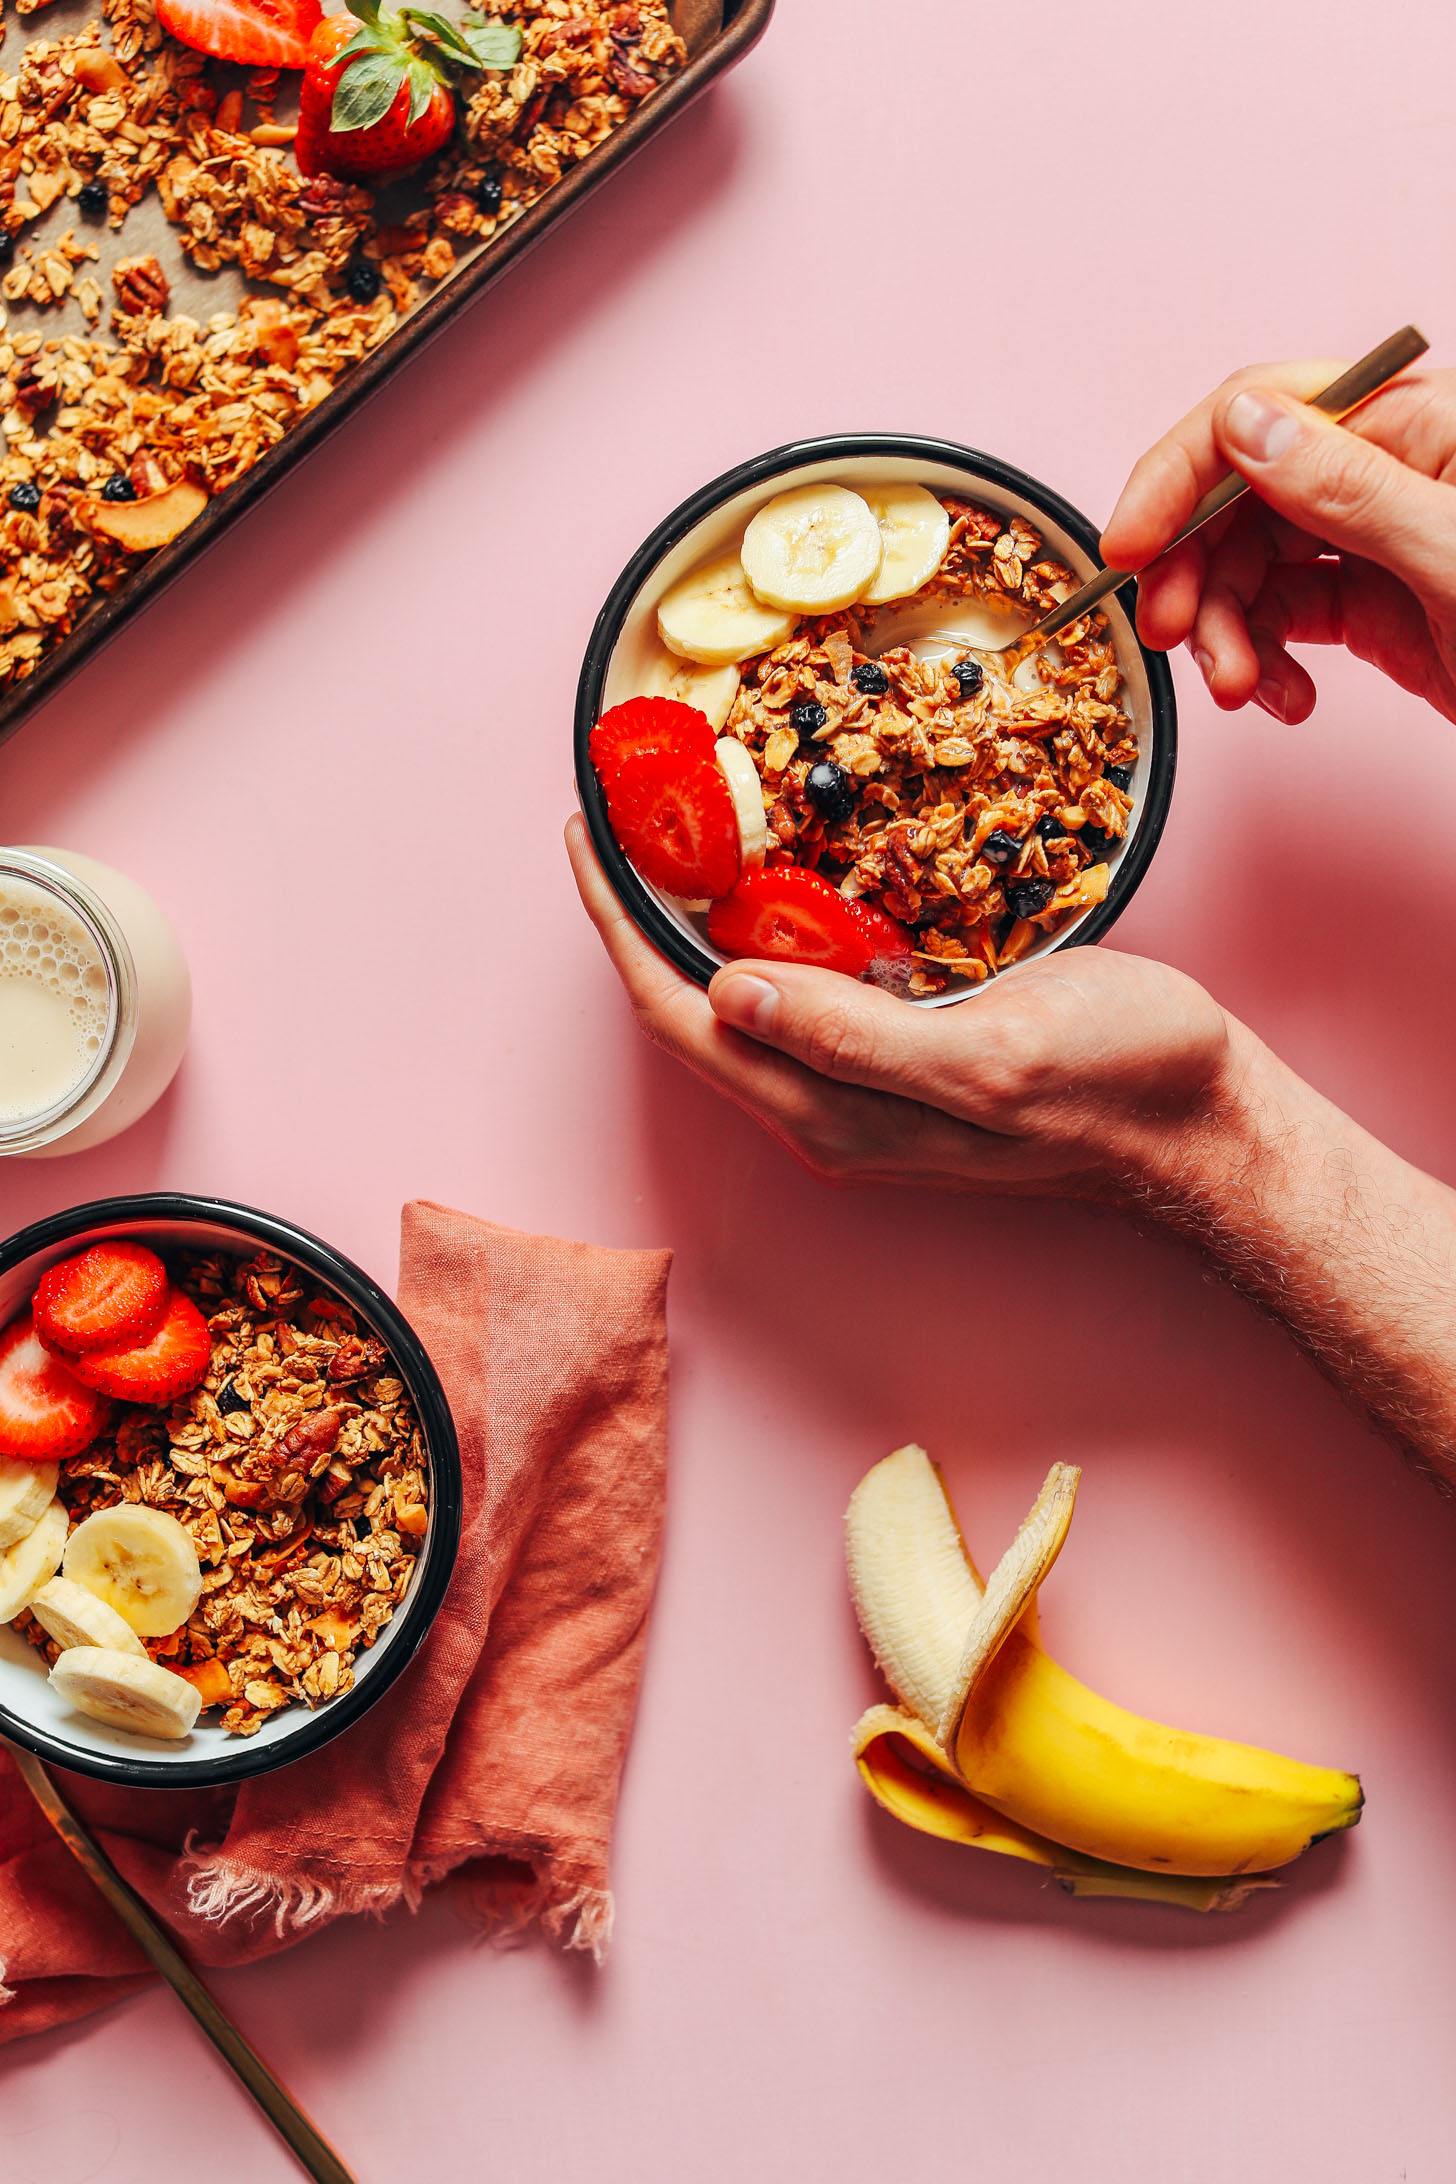 Using a spoon to grab a bite of granola for a gluten-free vegan breakfast